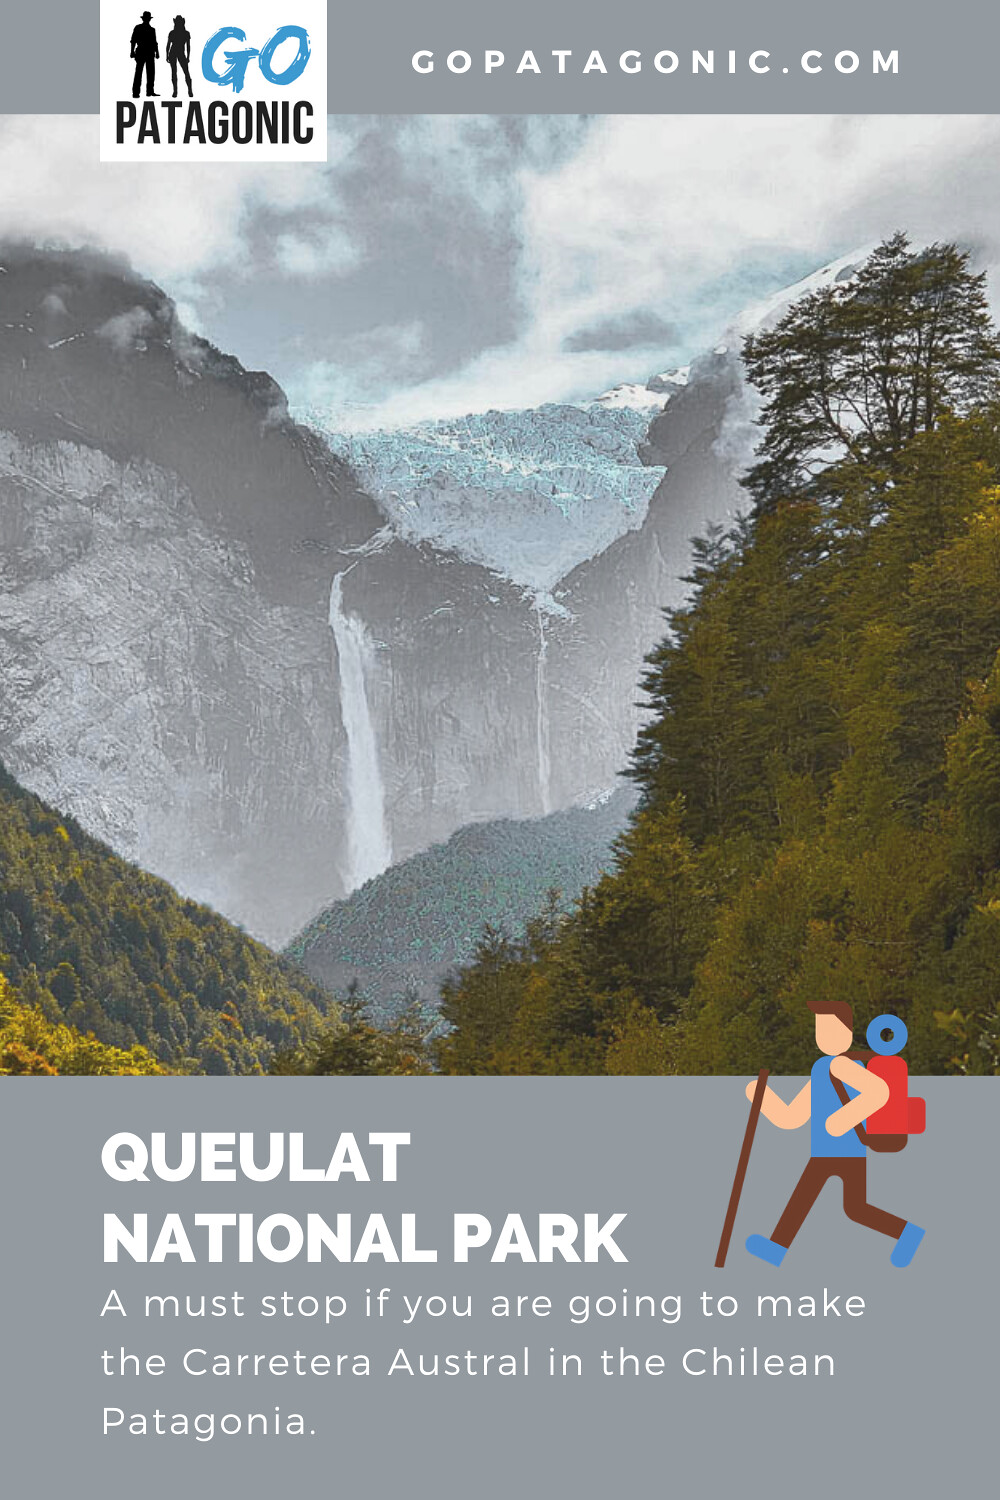 Visit Queulat National Park (Ventisquero Colgante)